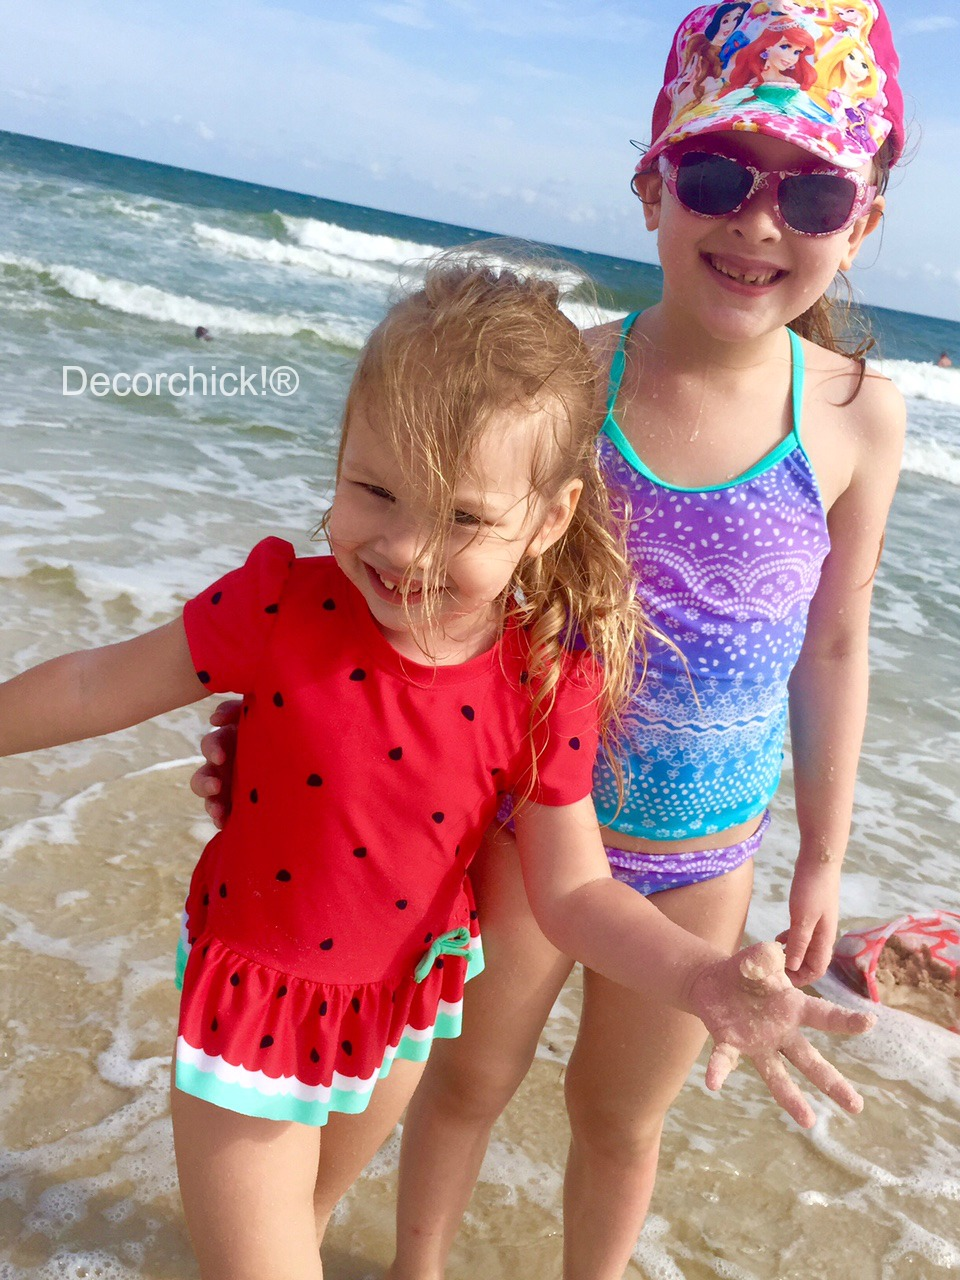 Beach Kids | Decorchick!®